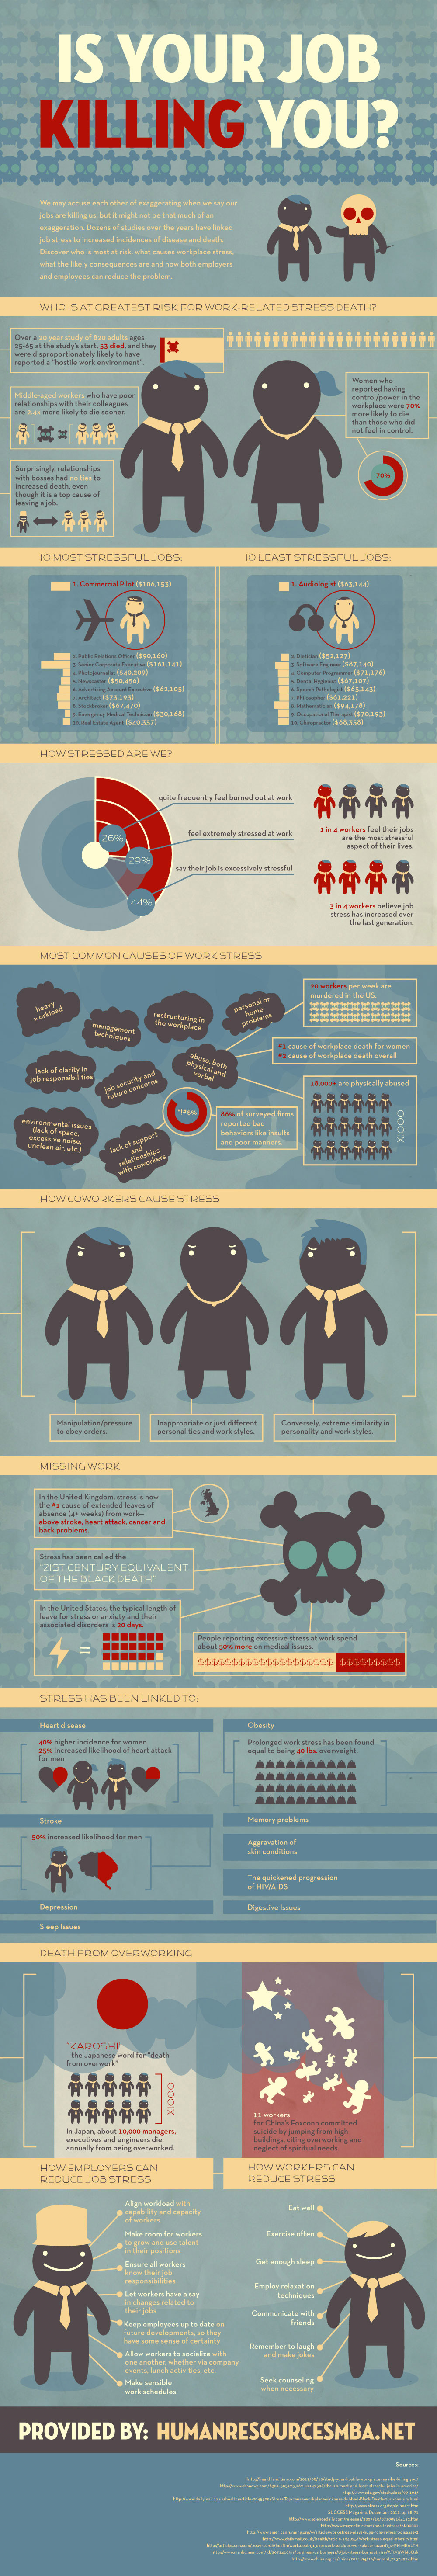 is your job killing you Is Your Job Killing You? [Infographic]